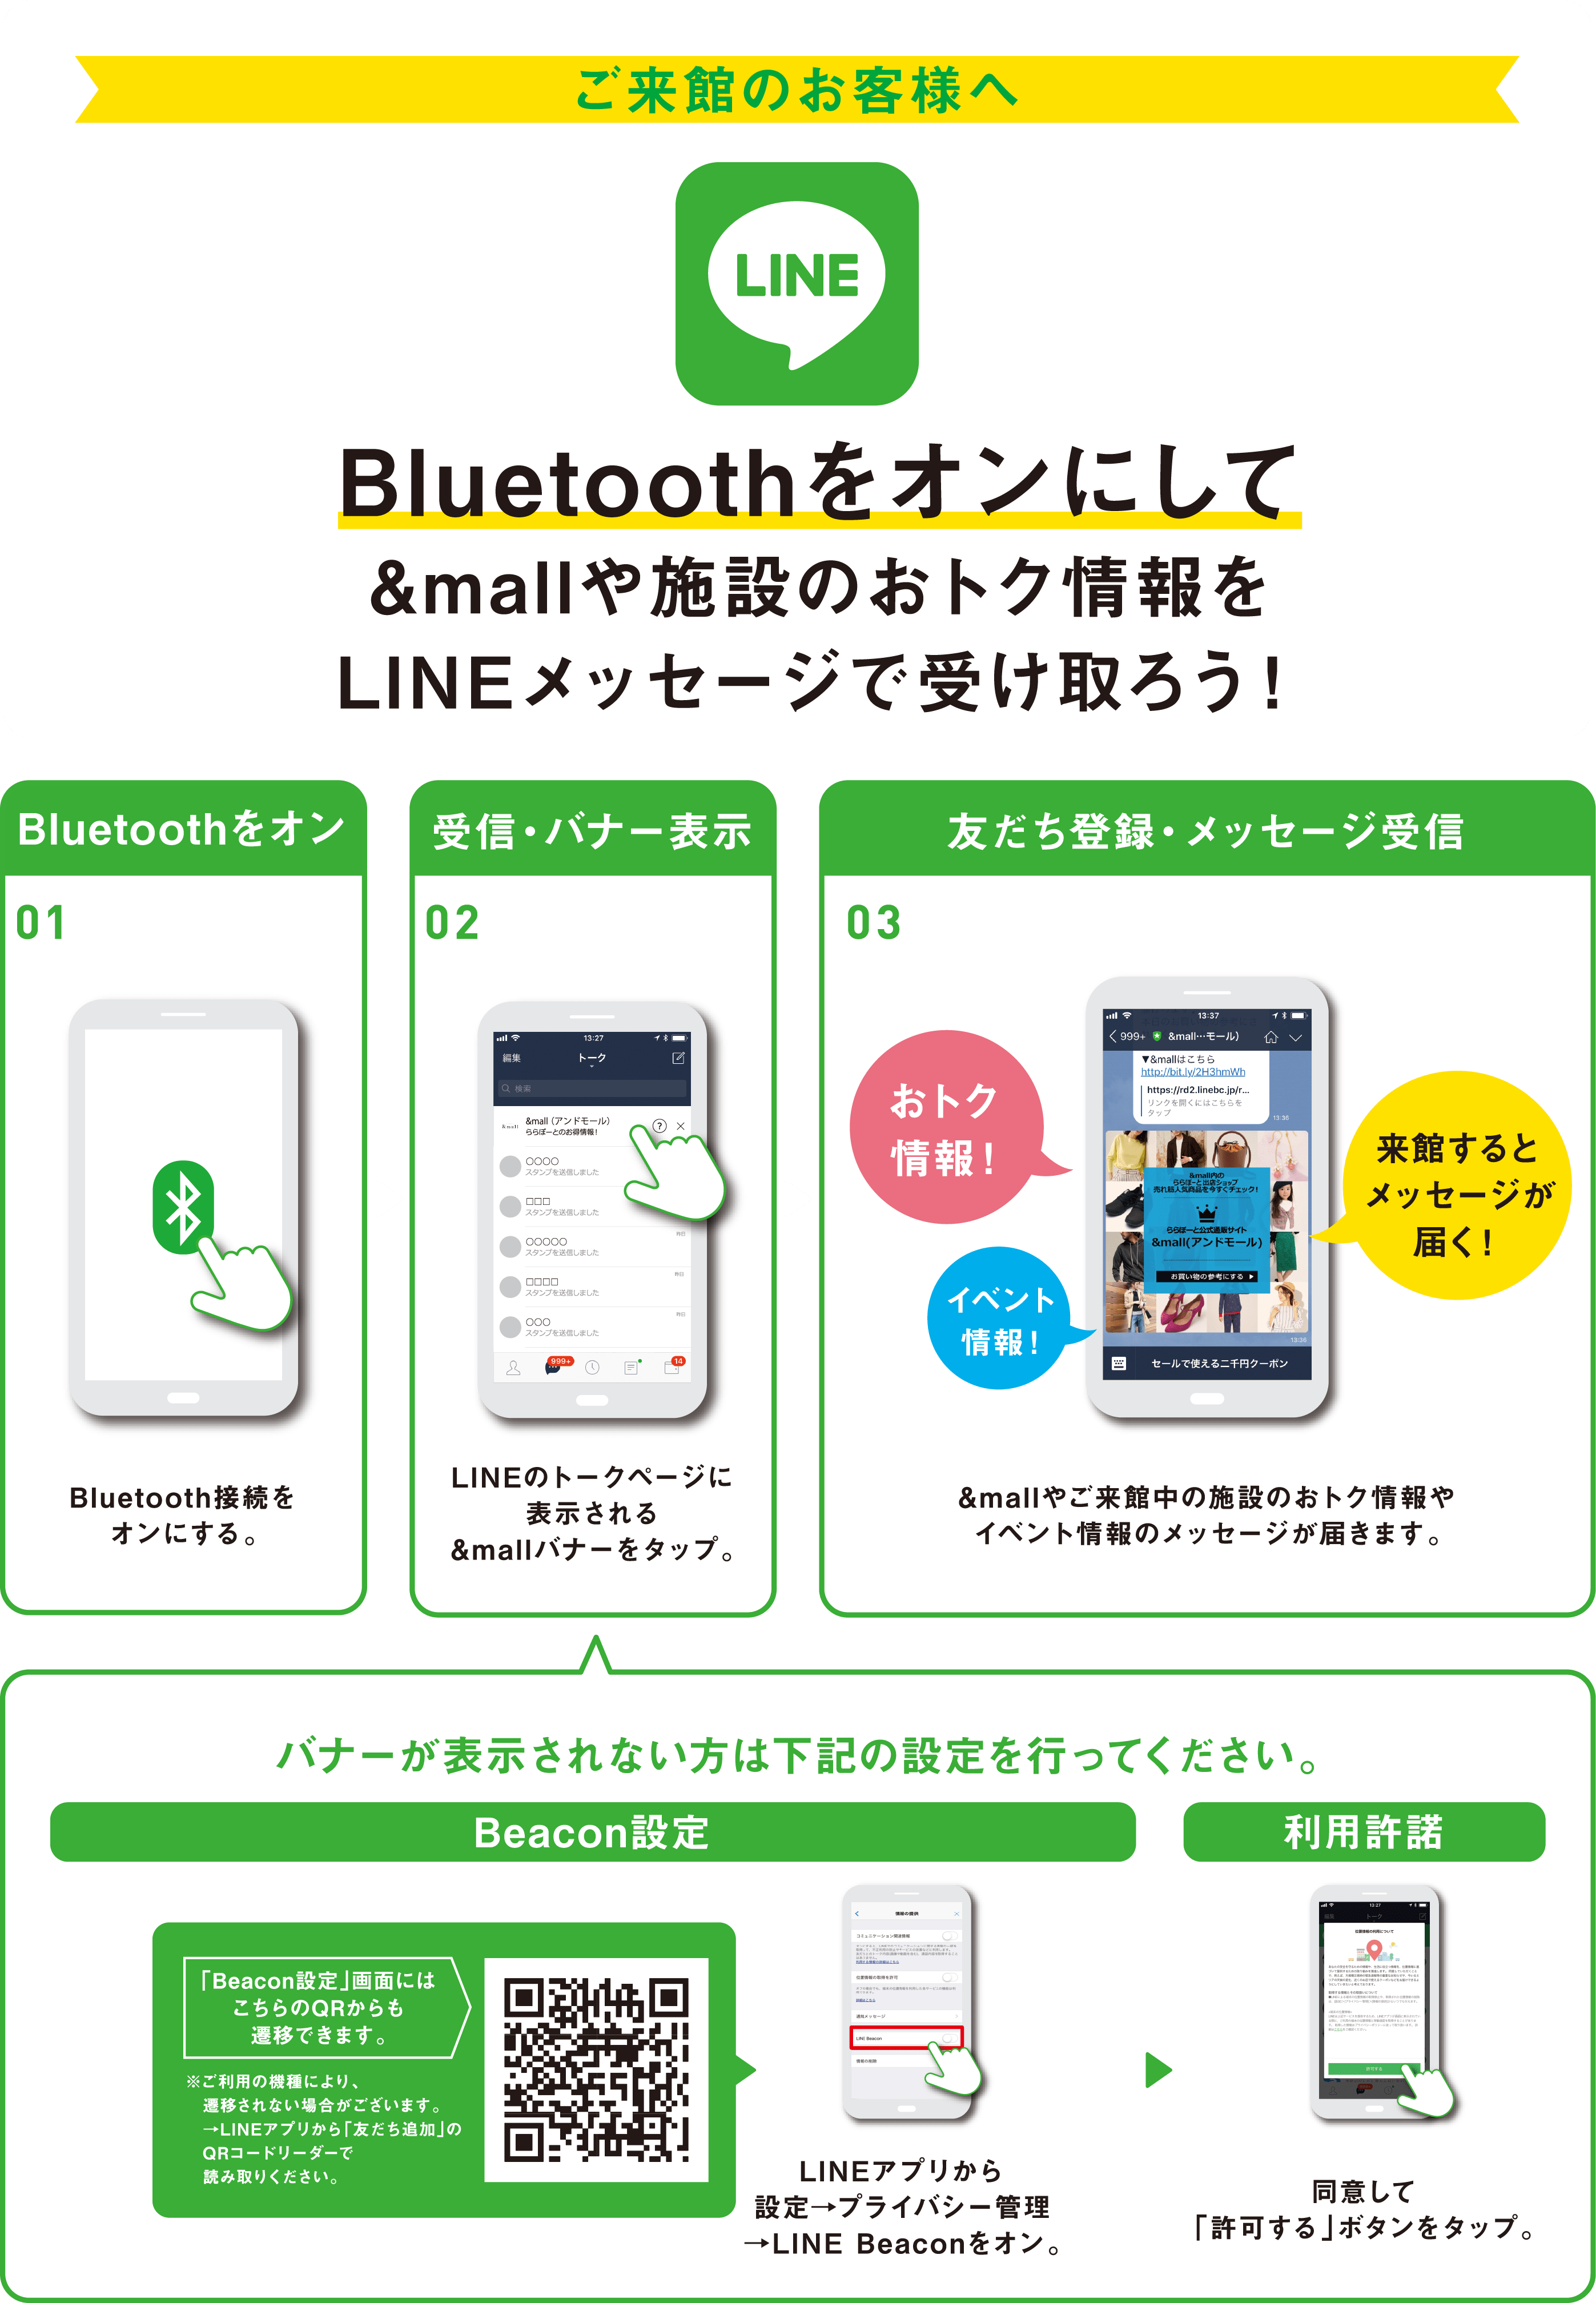 """To customer of visit. We turn on Bluetooth, and let's receive advantageous information of &mall and facility by LINE message! """"It is on in Bluetooth"""", and 01 turns on Bluetooth connection. """"Reception, banner setting"""" 02 taps &mall banner displayed on talk page of LINE. Message of advantageous information and event information of """"friend registration, message reception"""" 03.&mall and visiting facilities arrives. Person whom banner is not shown, please set the following. """"Beacon setting"""" Beacon setting window can change from this QR. ※It may not be changed by model of the use. → Please read in QR cord leaders of """"addition of friend"""" from LINE application. We are set by LINE application → Privacy management → We turn on LINE Beacon. We tap the """"use consent"""" button which we agree and """"admit""""."""